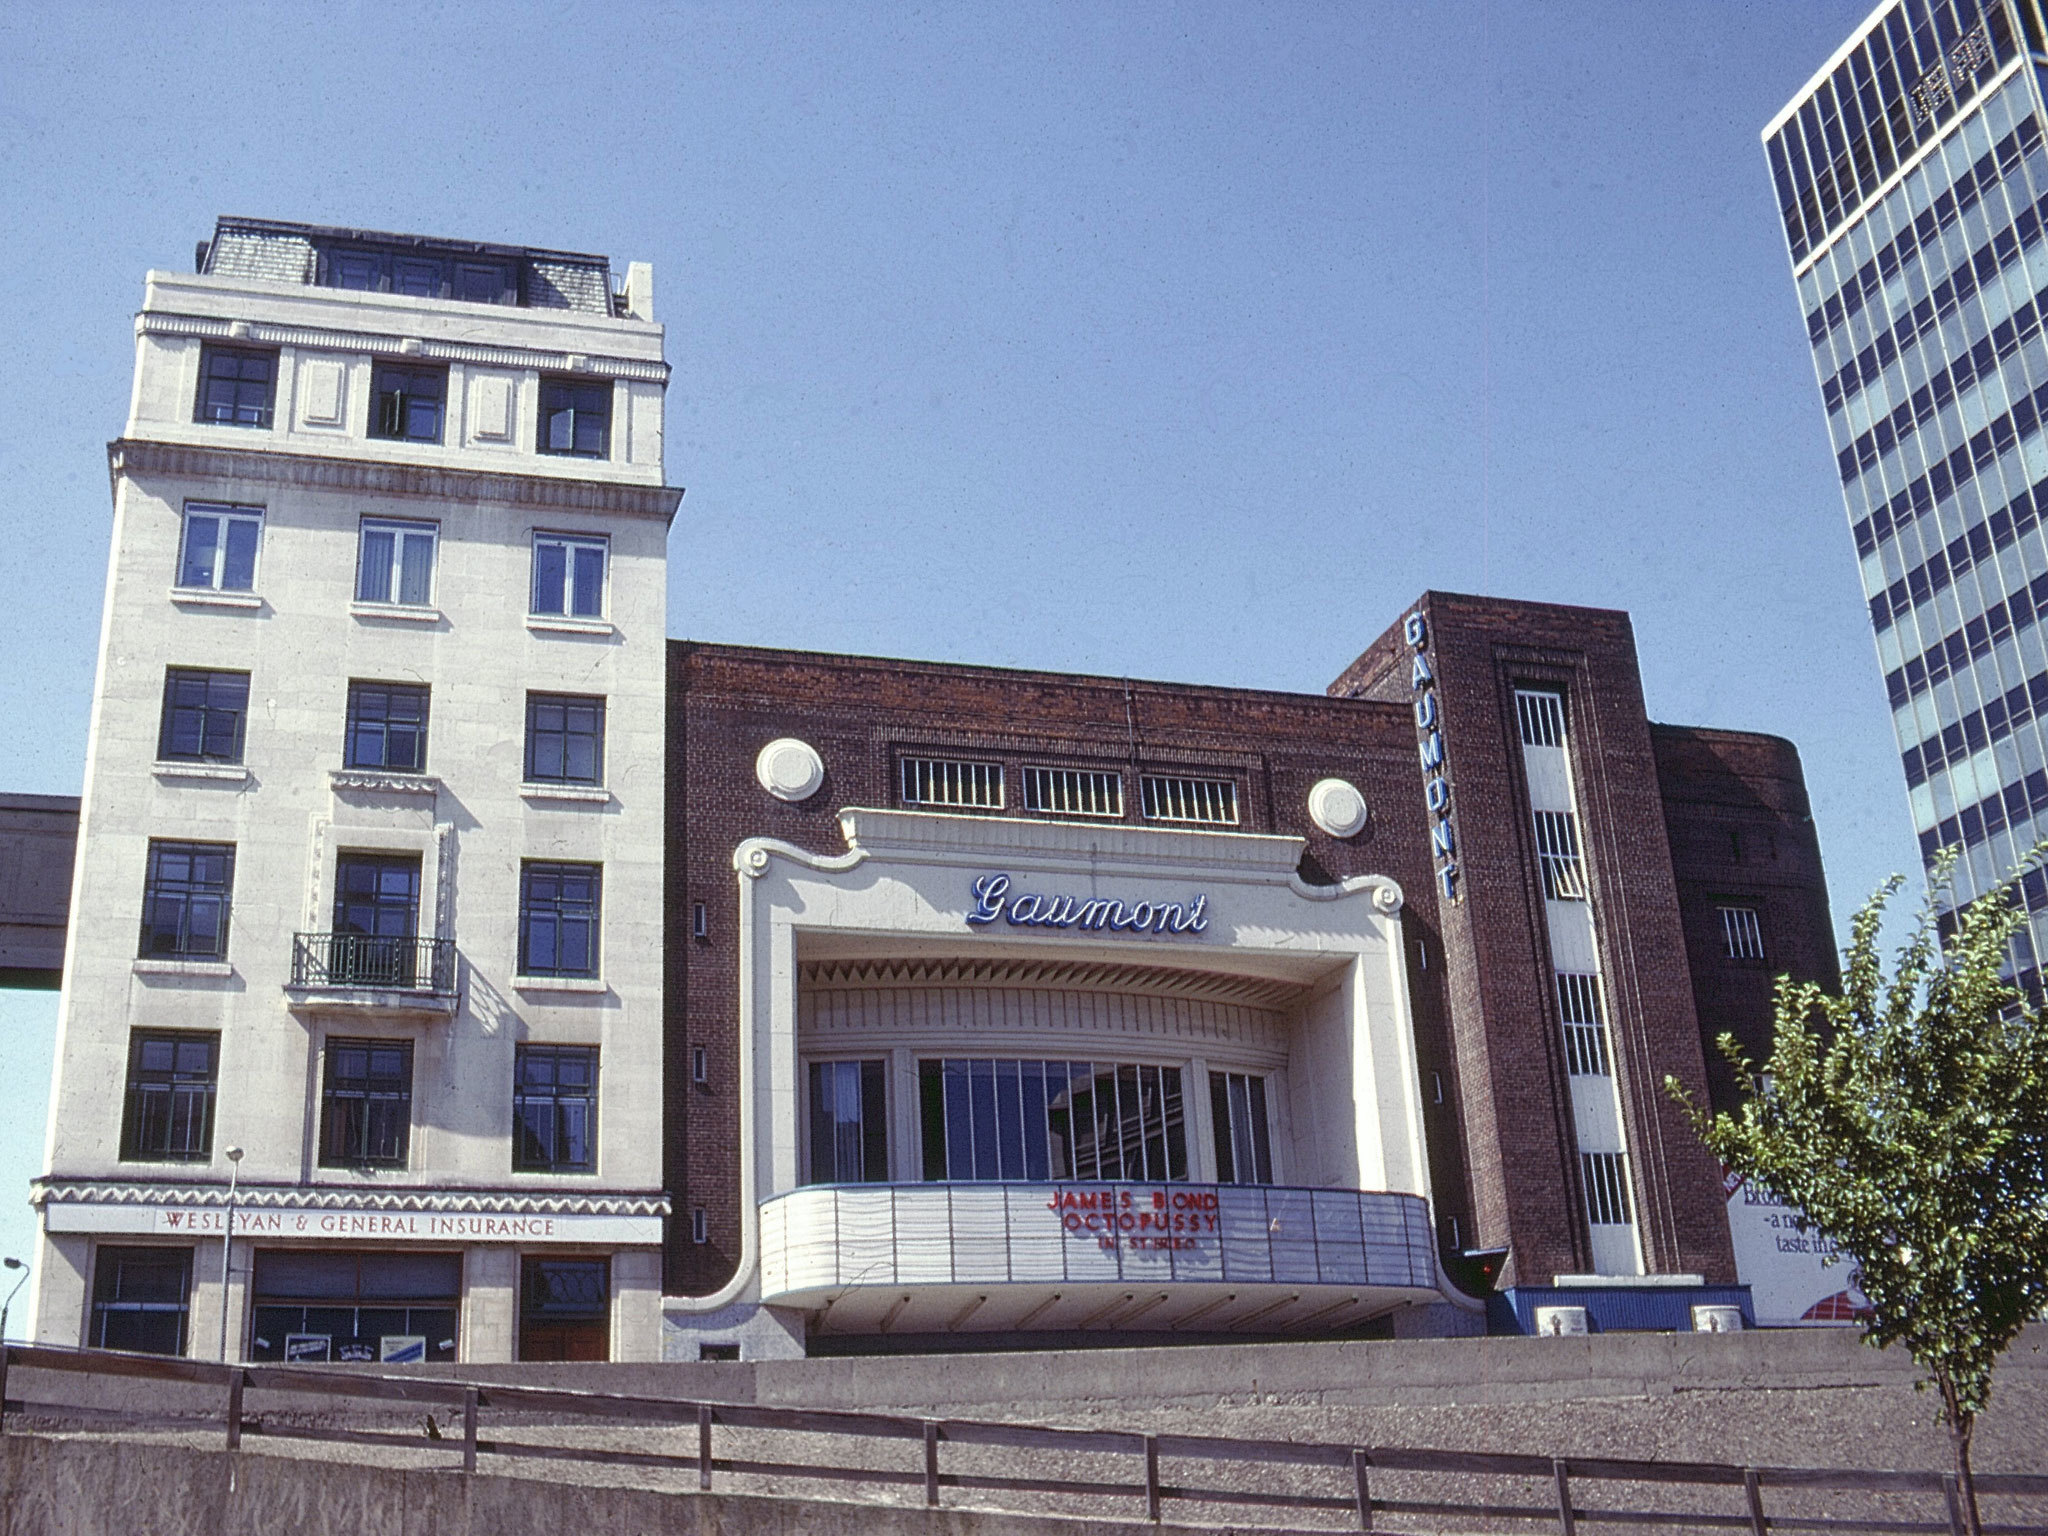 22 retro pictures of Birmingham in the '80s